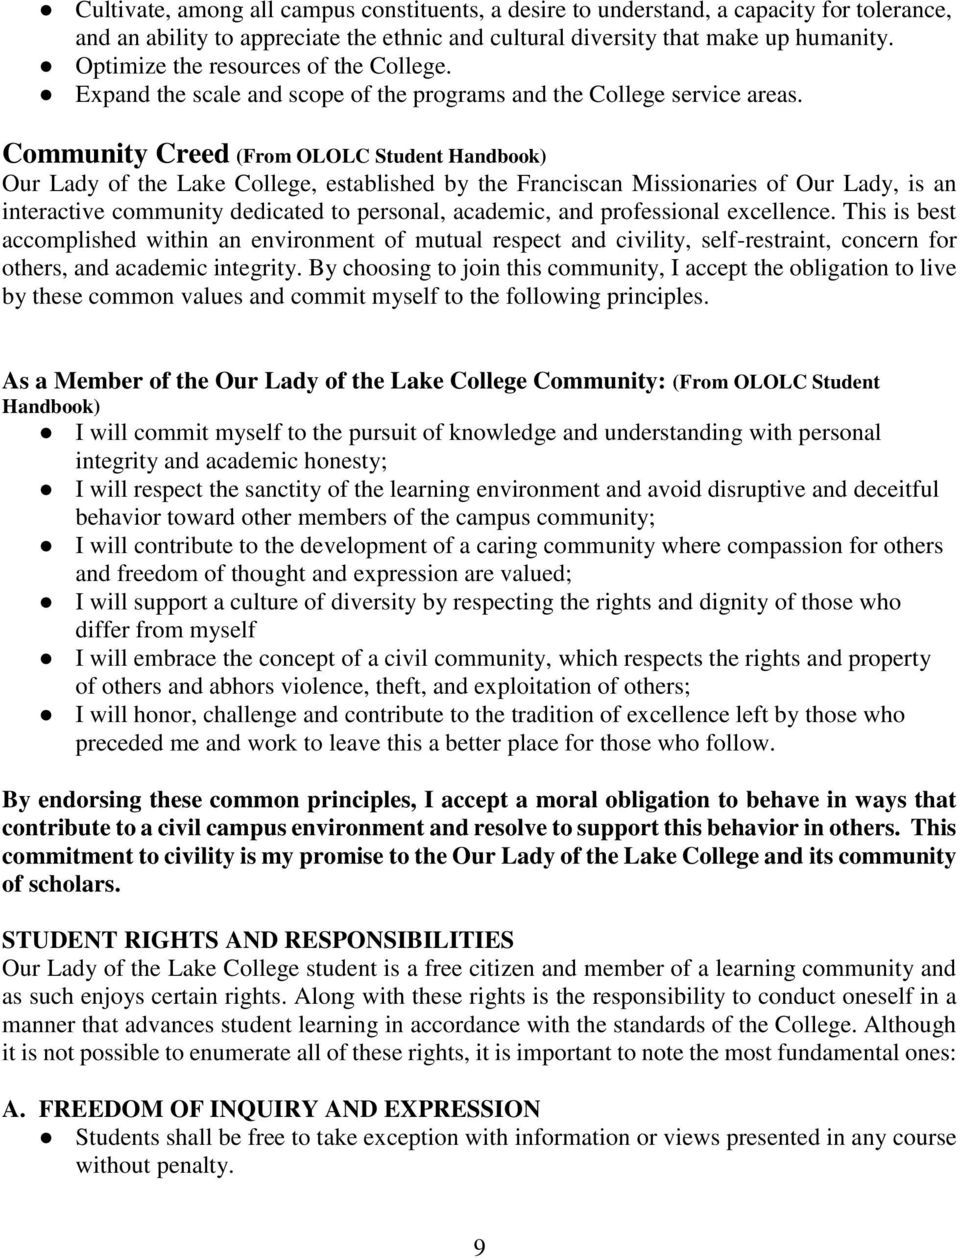 Community Creed (From OLOLC Student Handbook) Our Lady of the Lake College, established by the Franciscan Missionaries of Our Lady, is an interactive community dedicated to personal, academic, and